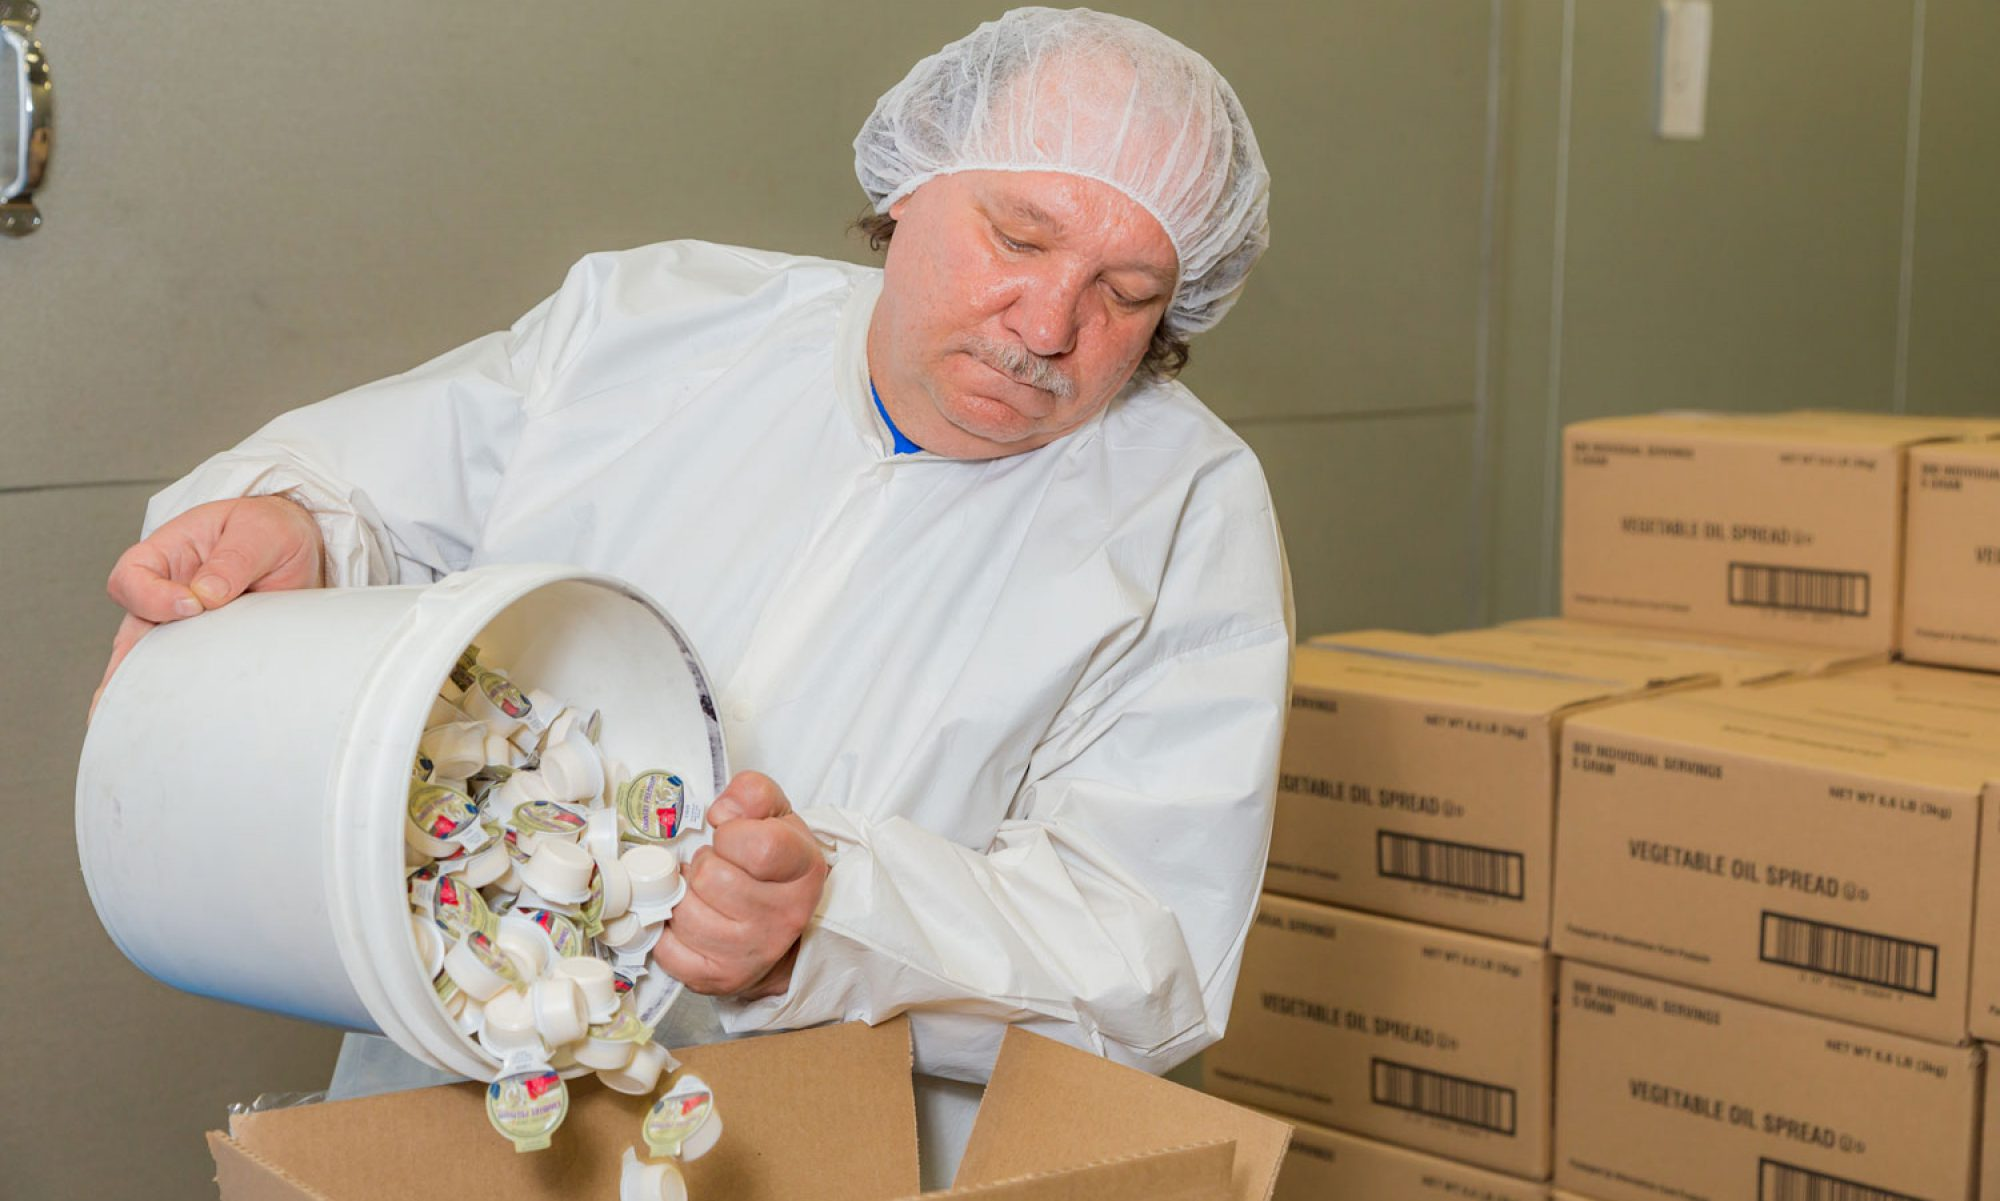 Alternatives Industry worker repackaging products. This is just one of the many services that can be provided to our clients.